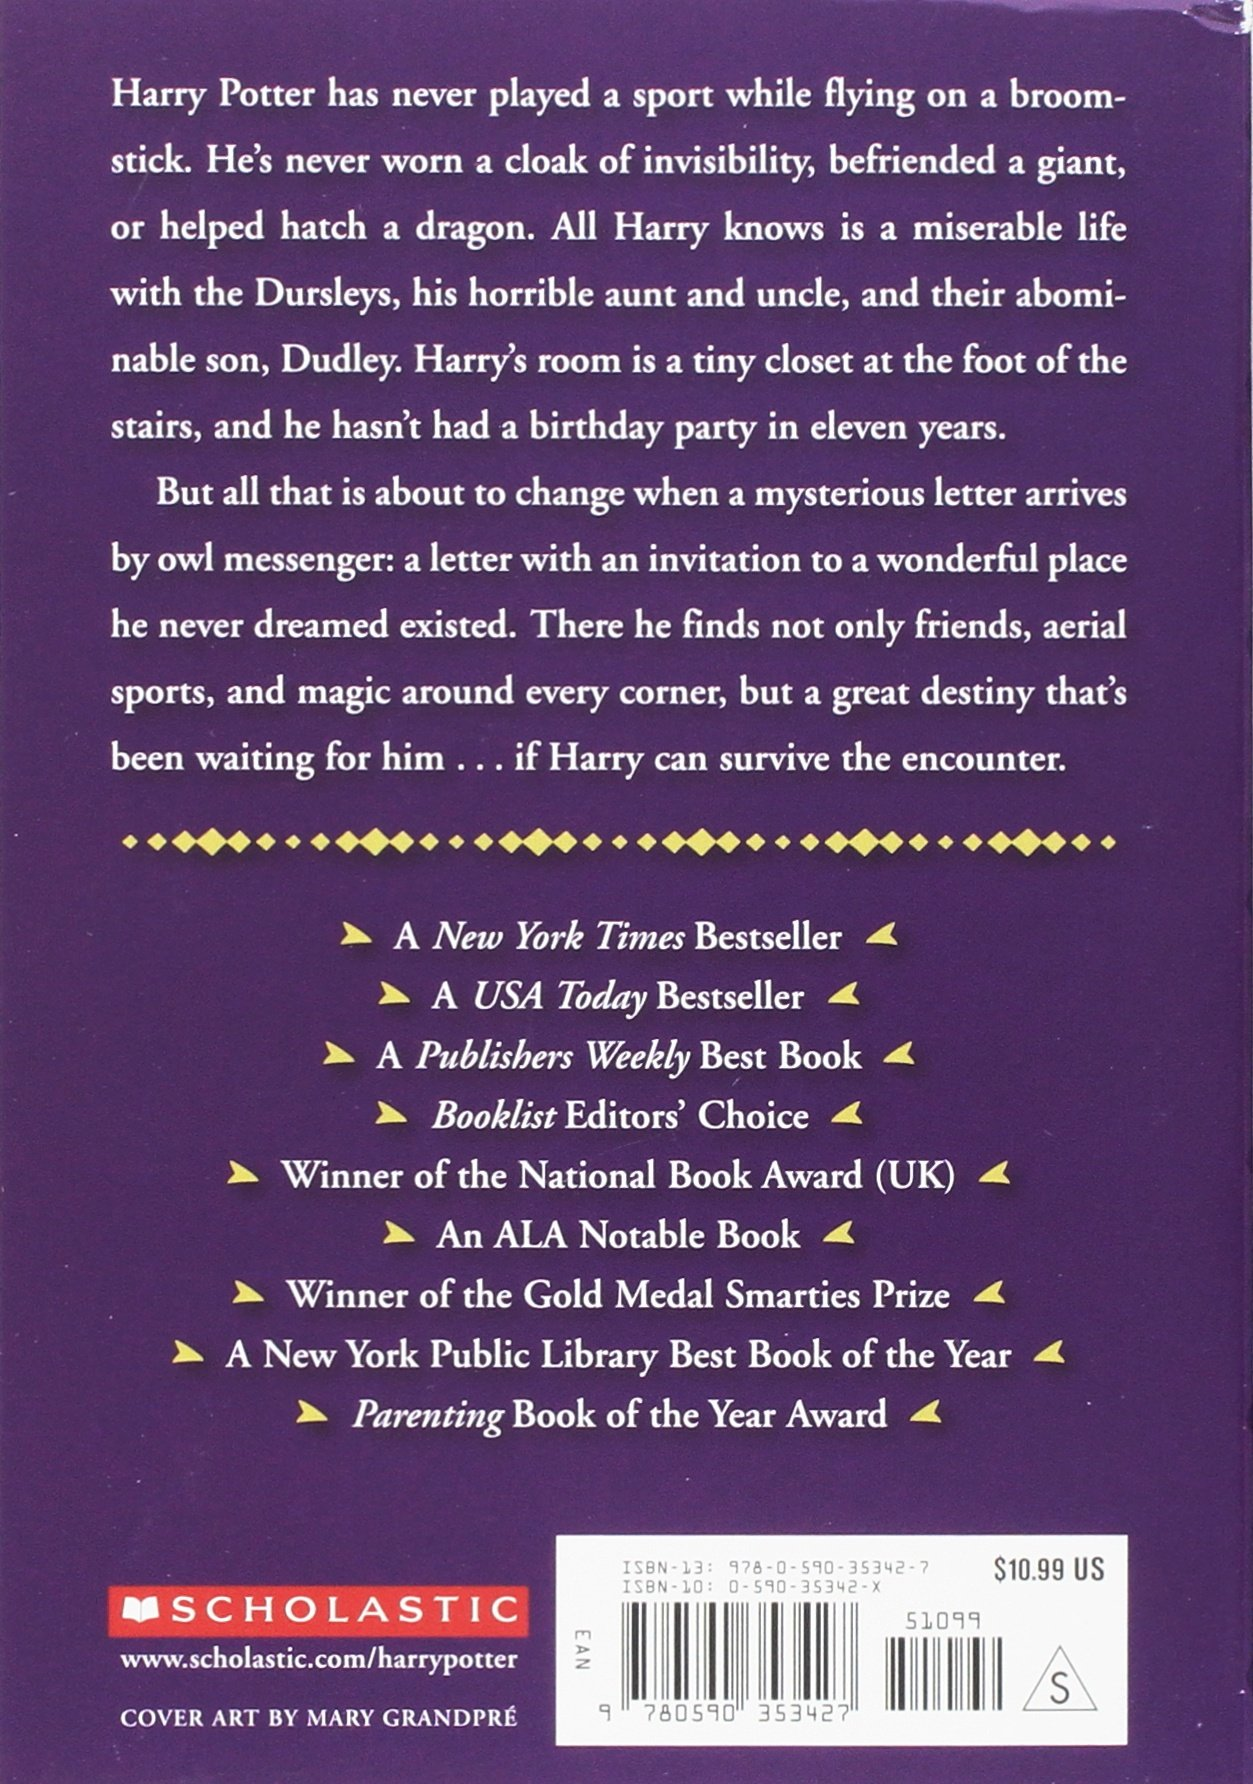 harry potter and the sorcerers stone jk rowling mary grandpr 0038332166576 amazoncom books